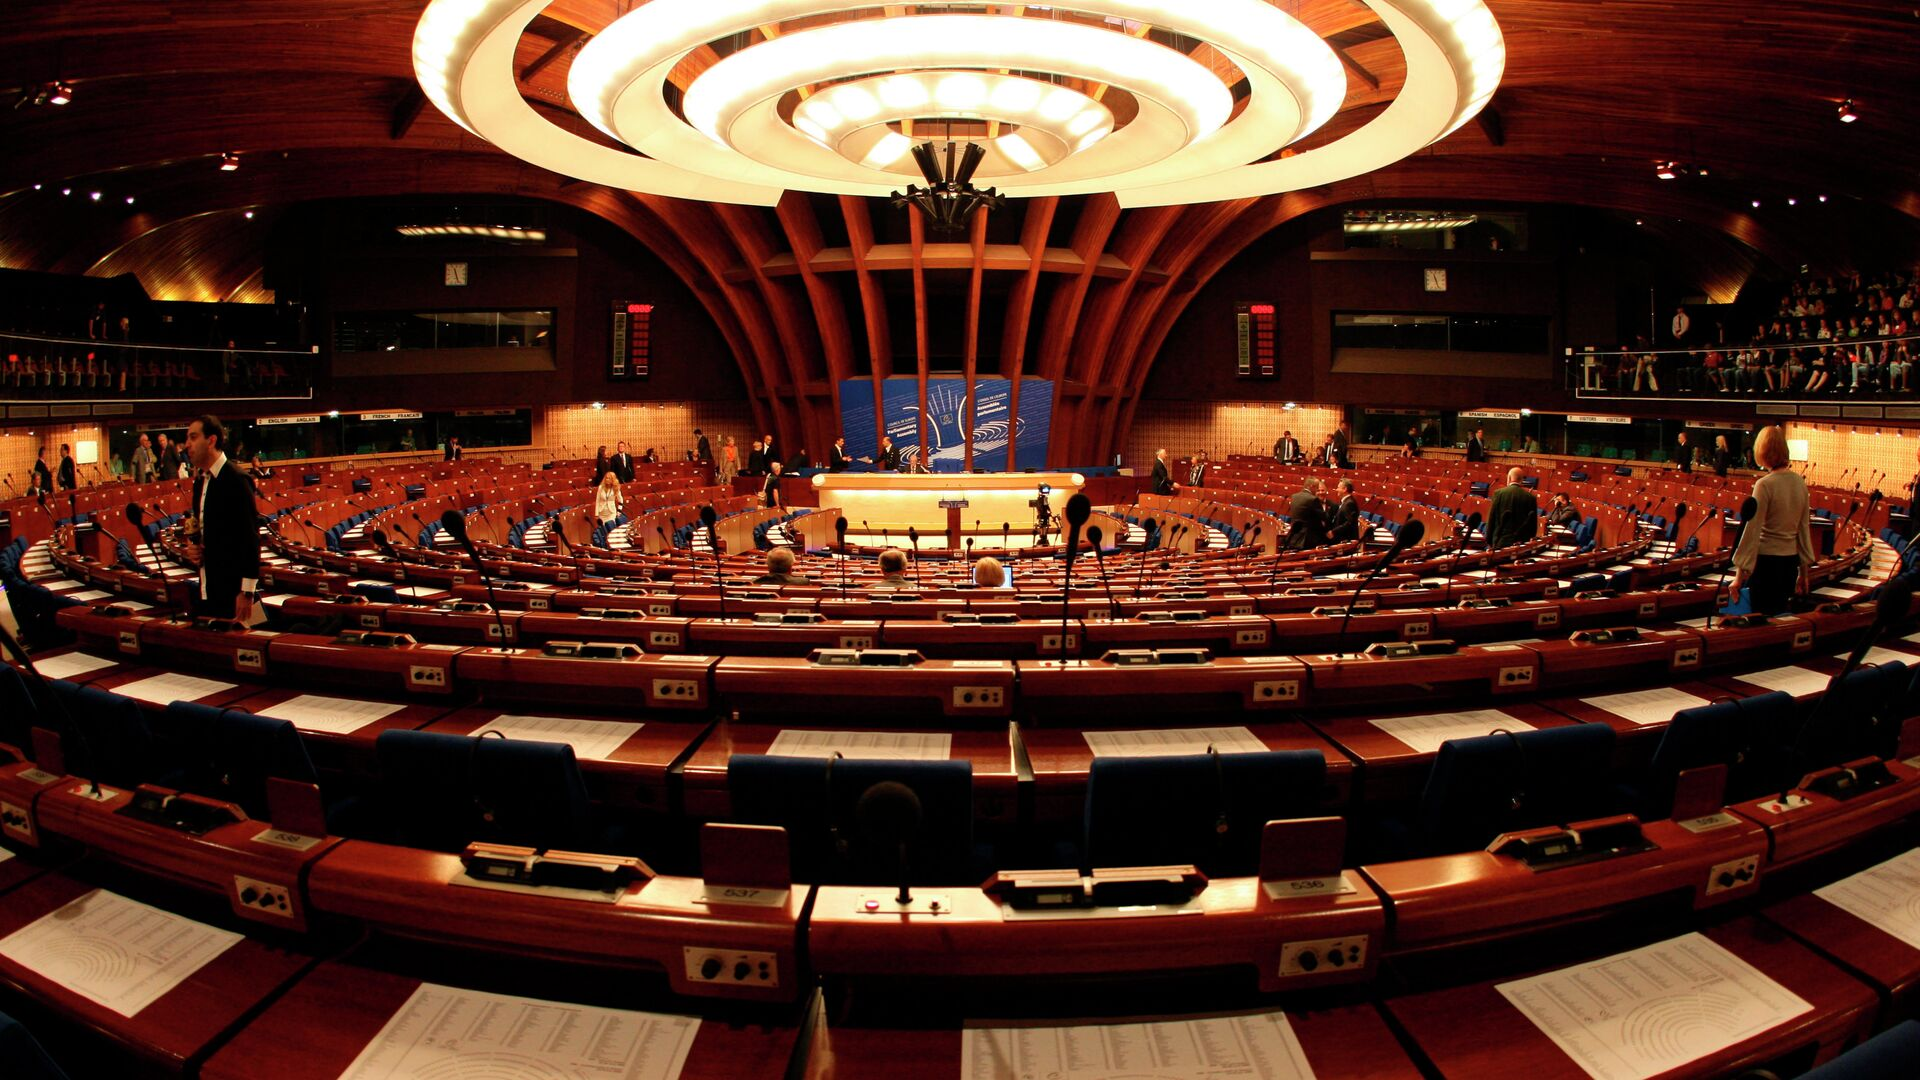 General view of the plenary room of the Council of Europe in Strasbourg, eastern France - Sputnik Mundo, 1920, 23.09.2021